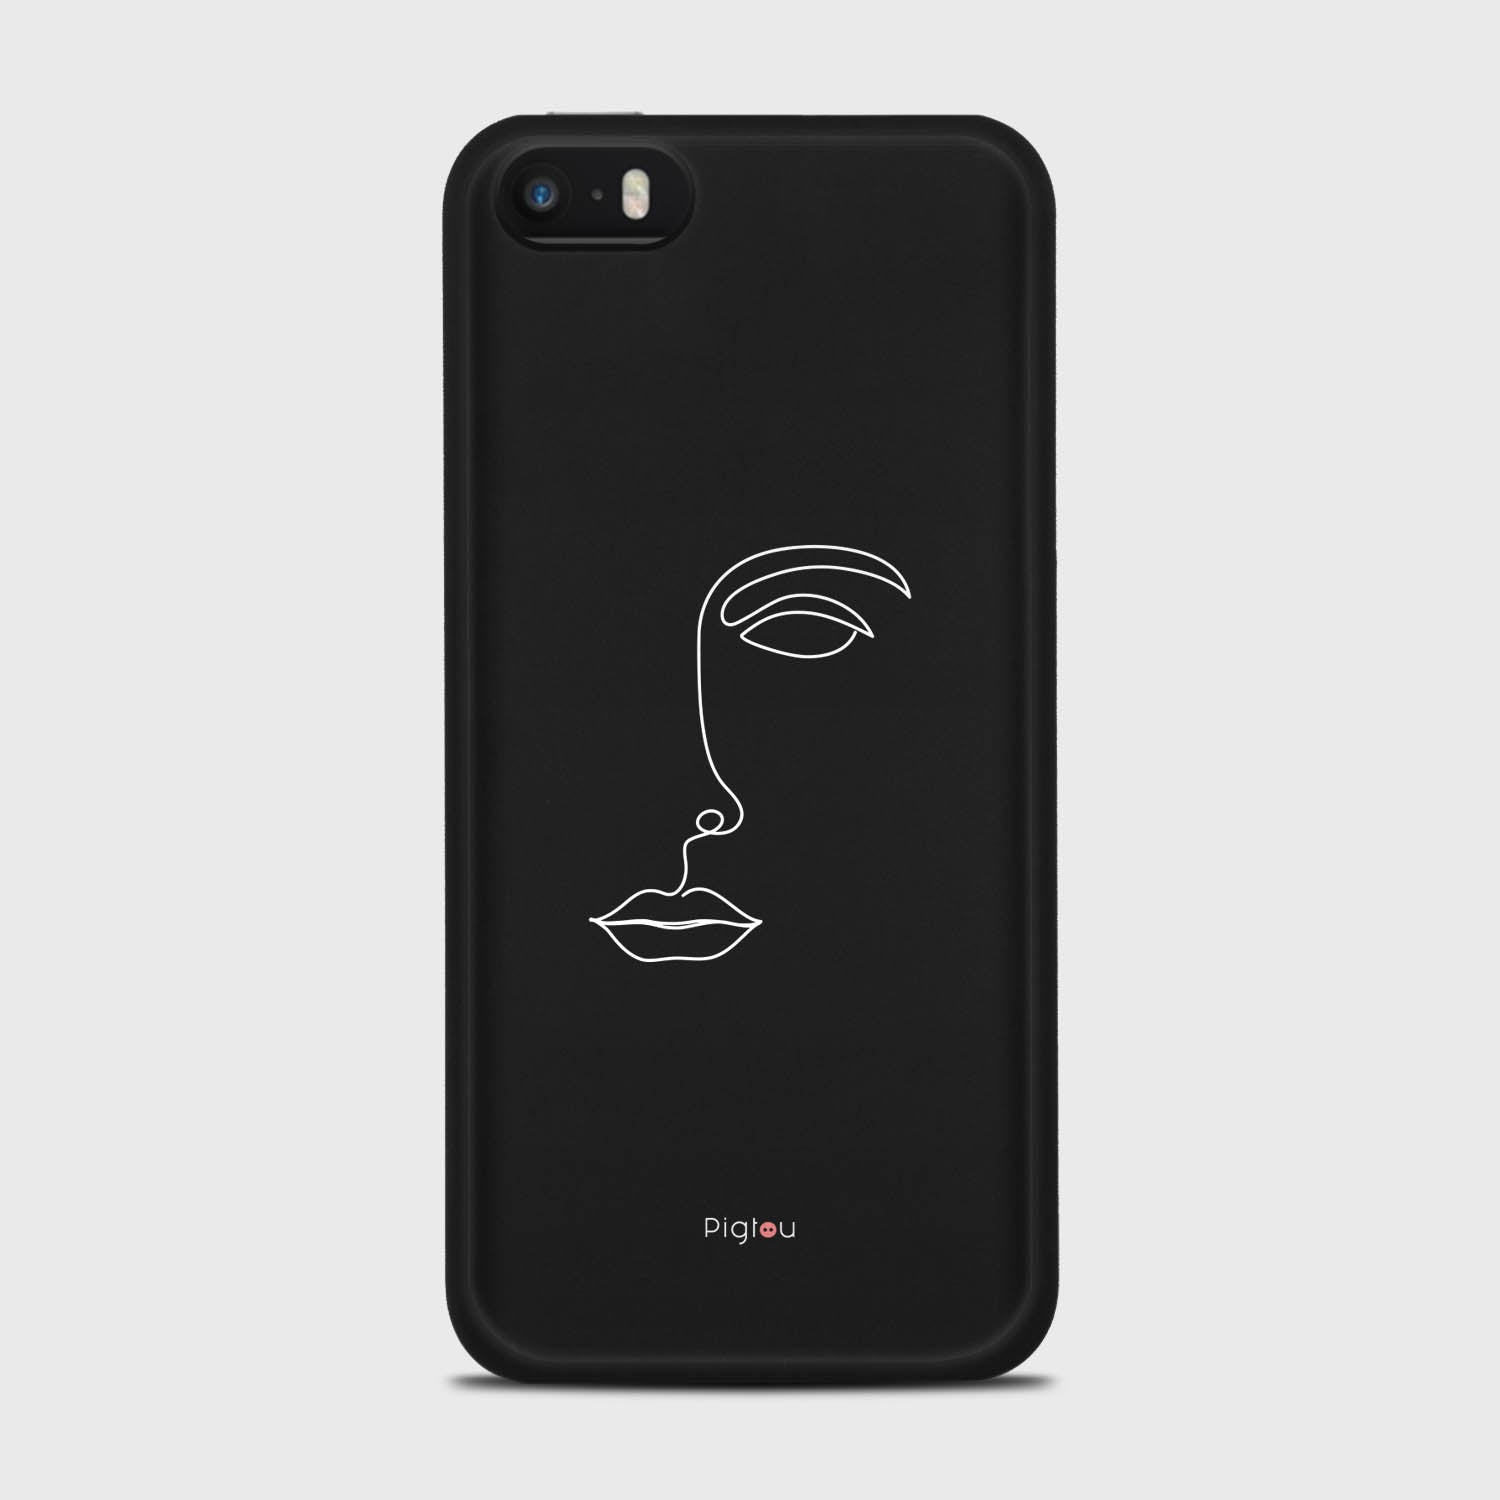 SILHOUETTE FACE iPhone SE cases | Pigtou